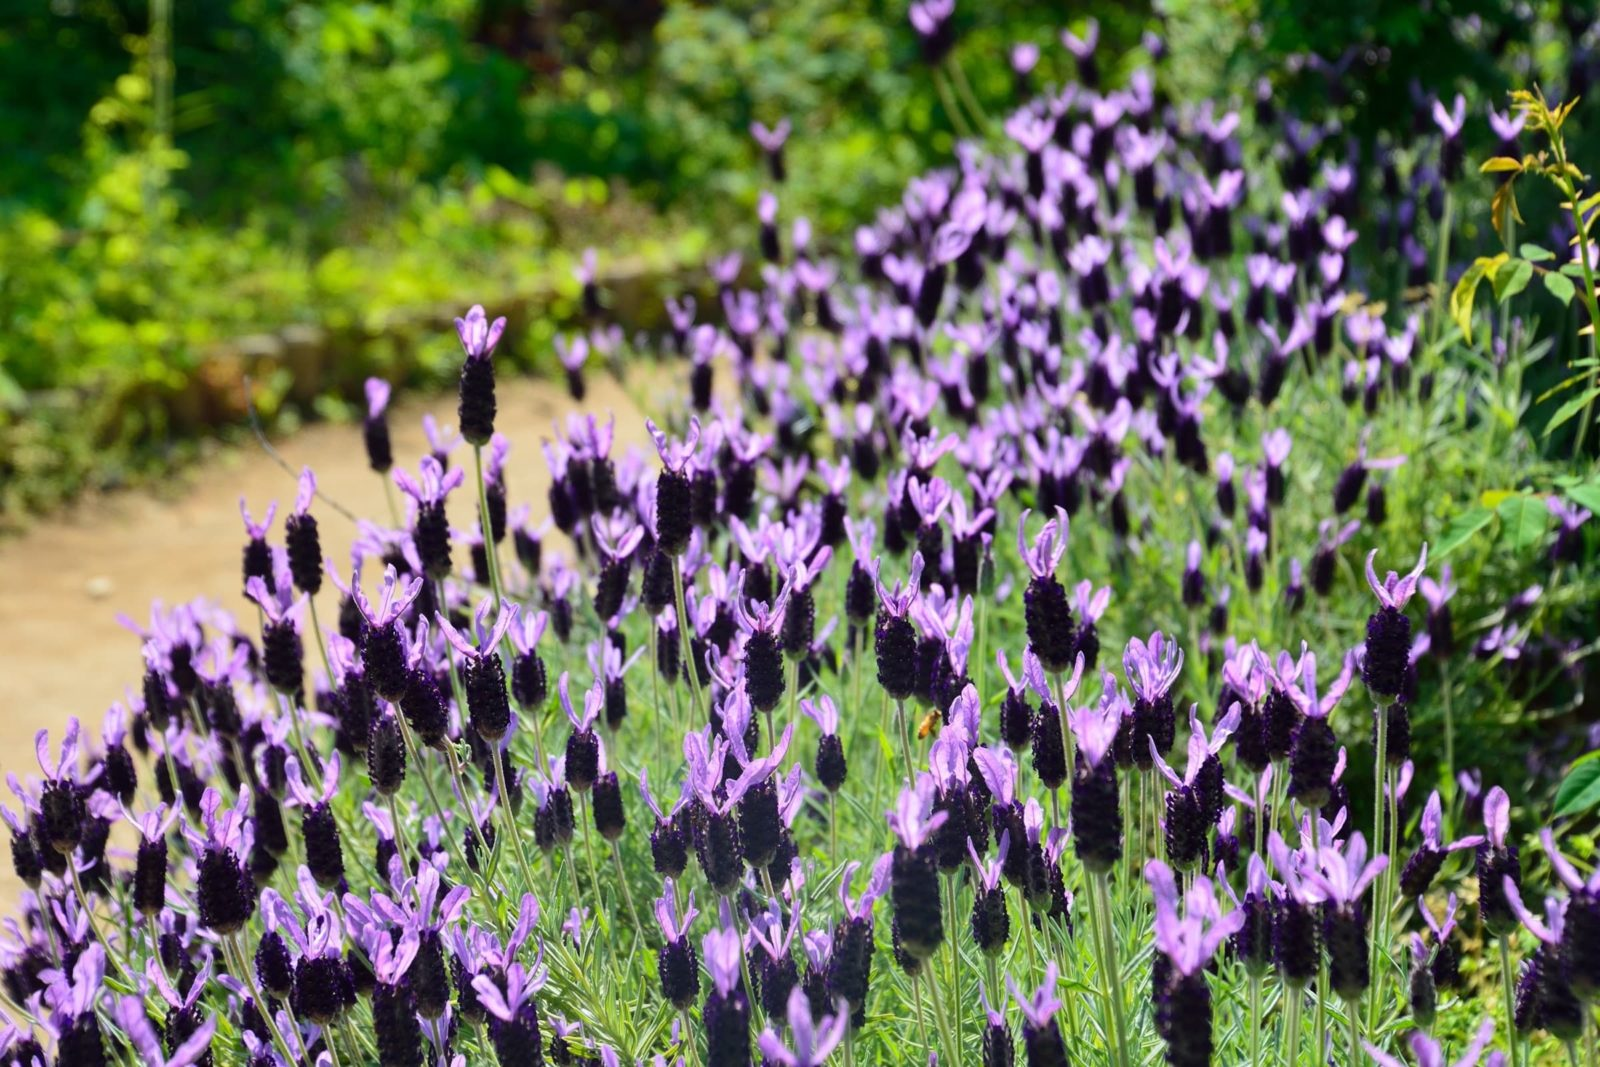 French lavender growing next to a garden path